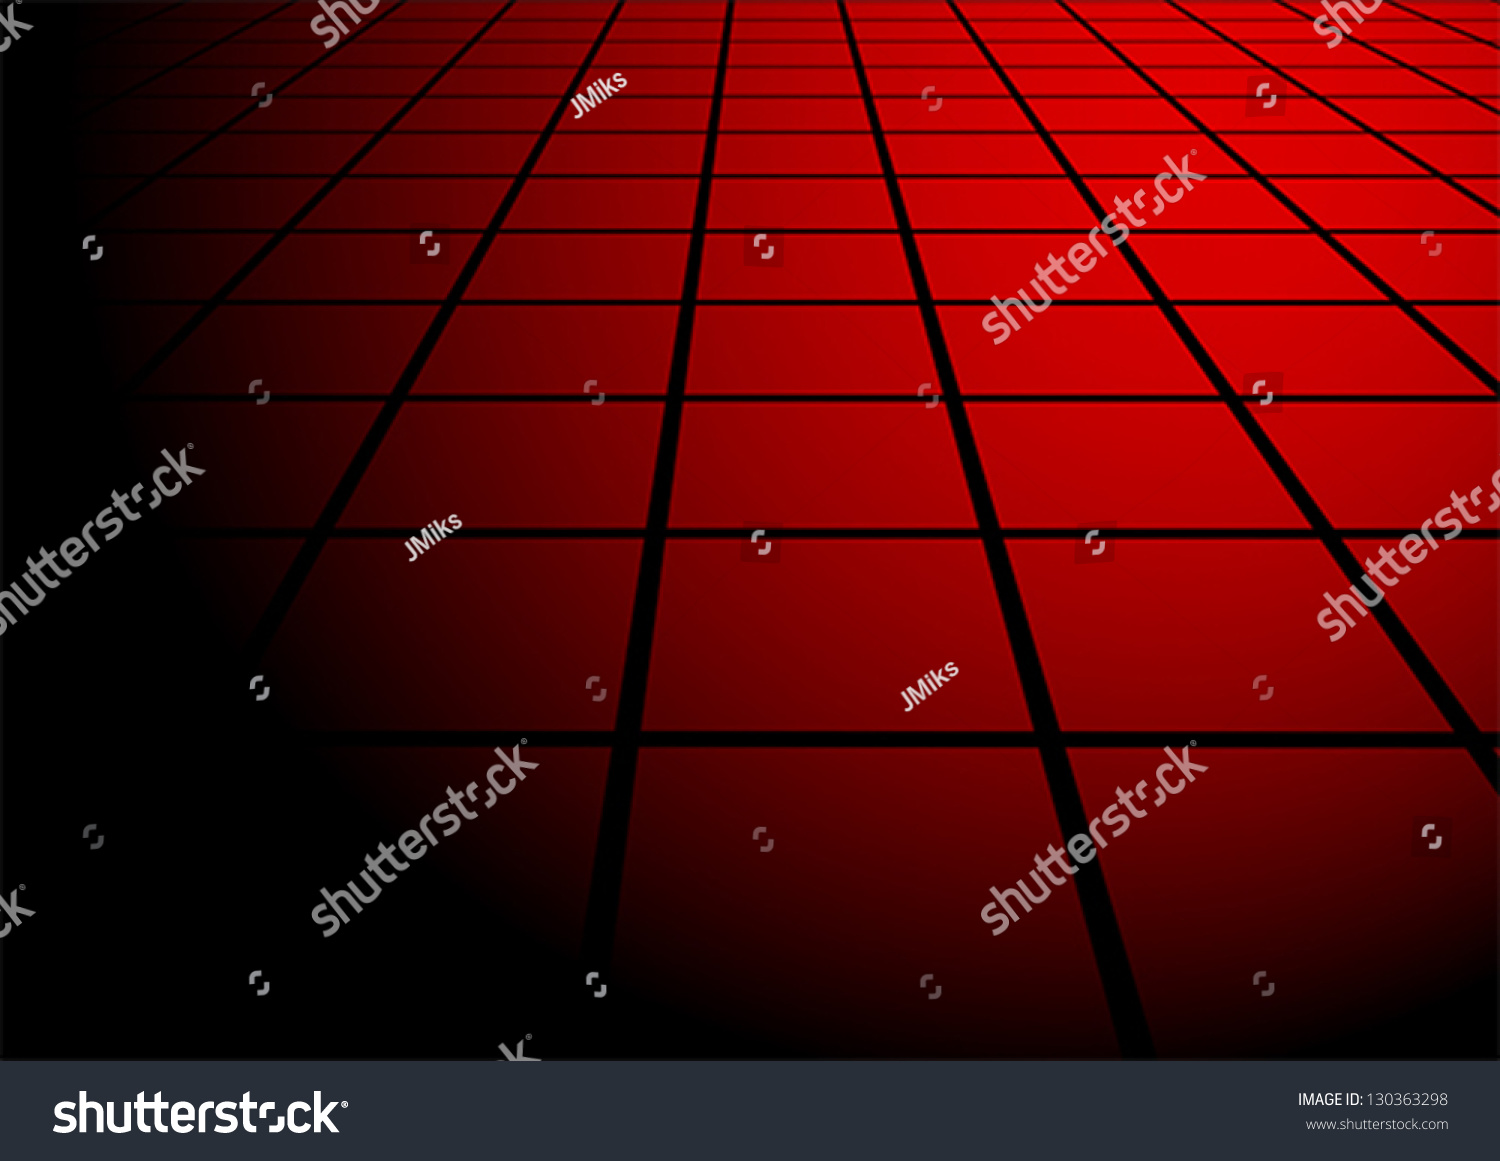 Black and red floor tiles gallery home flooring design red floor tiles gallery tile flooring design ideas abstract red floor tiles on black stock vector doublecrazyfo Image collections